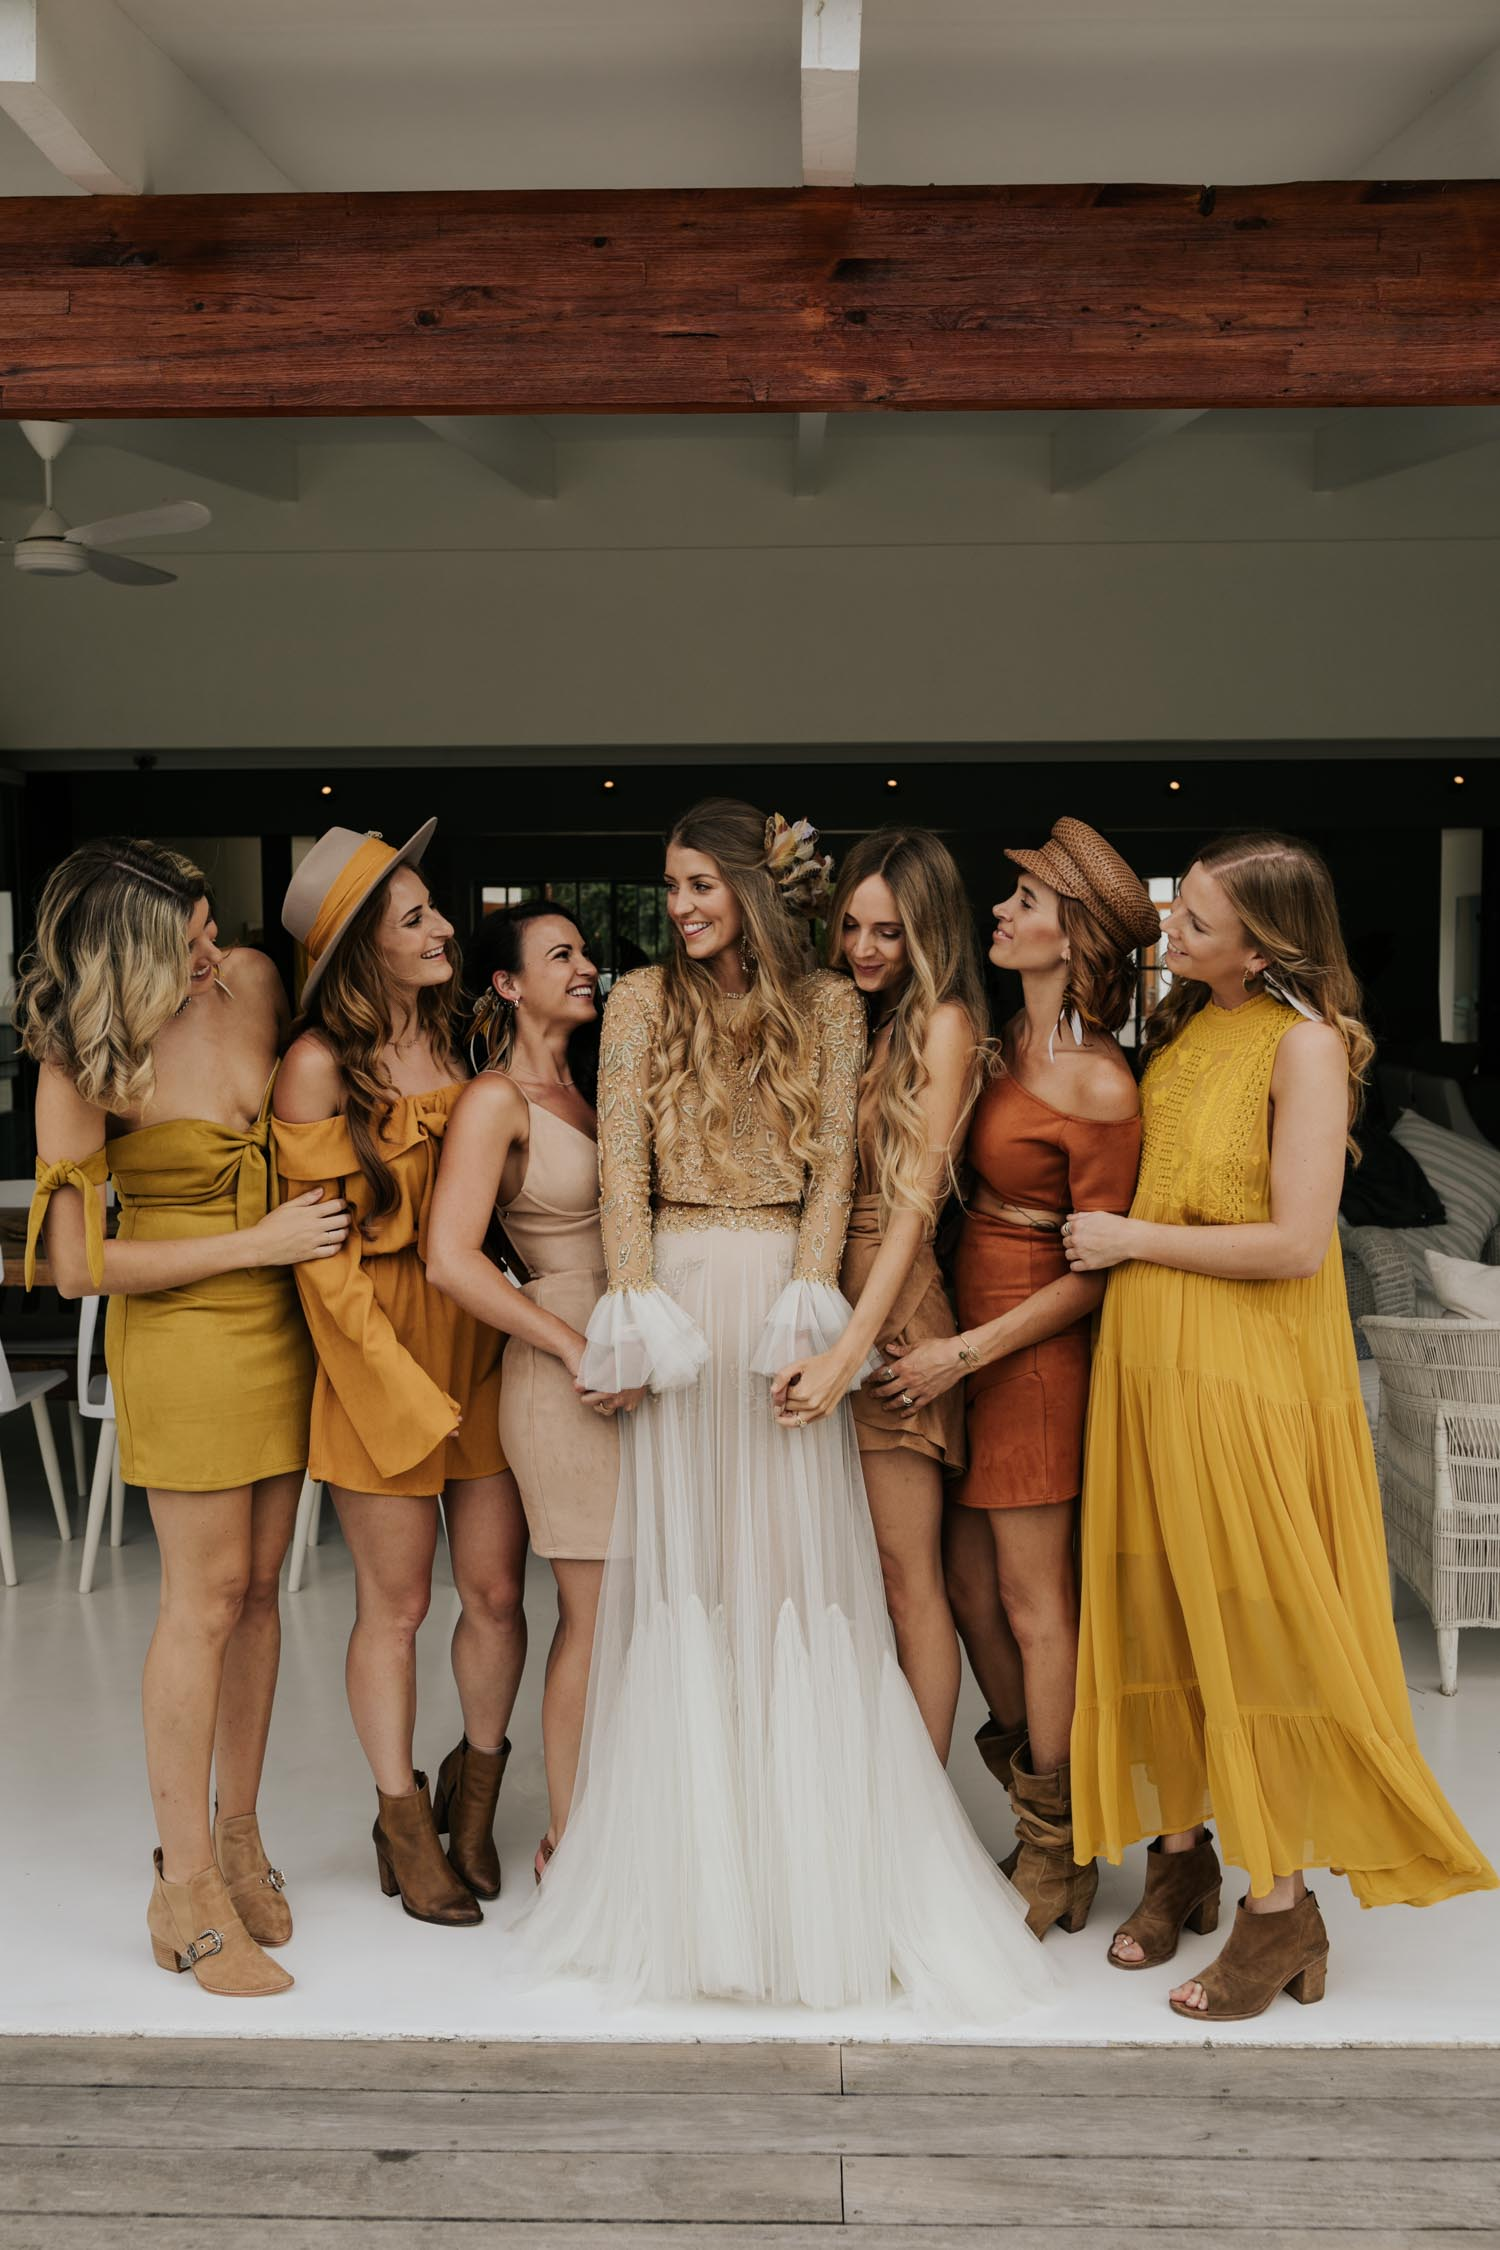 The ultimate boho gypsy bride tribe wearing gypsy sunshine and rust coloured dresses and hats